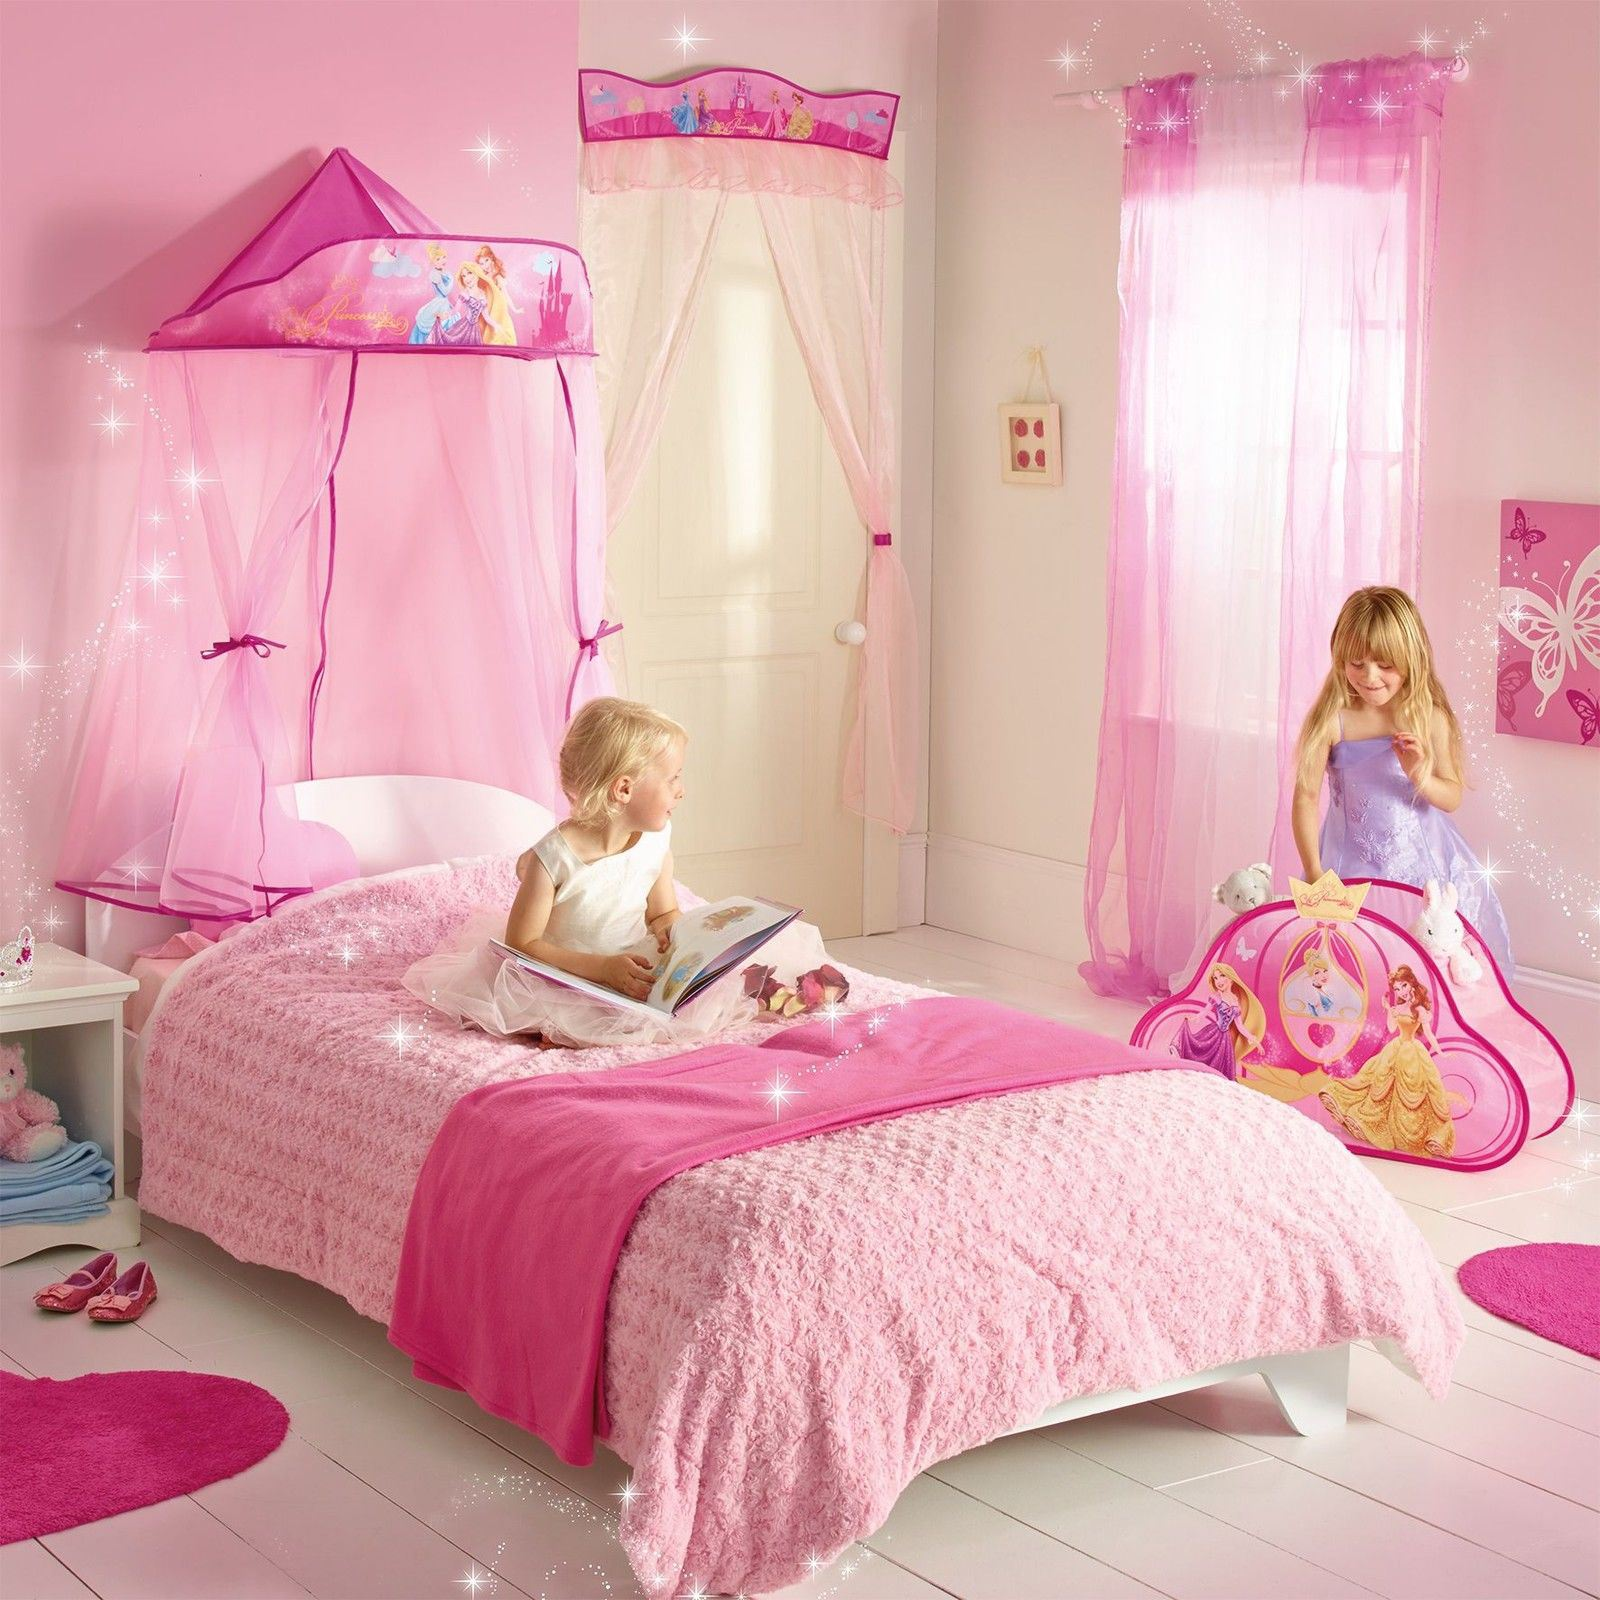 about disney princess hanging bed canopy new girls bedroom decor